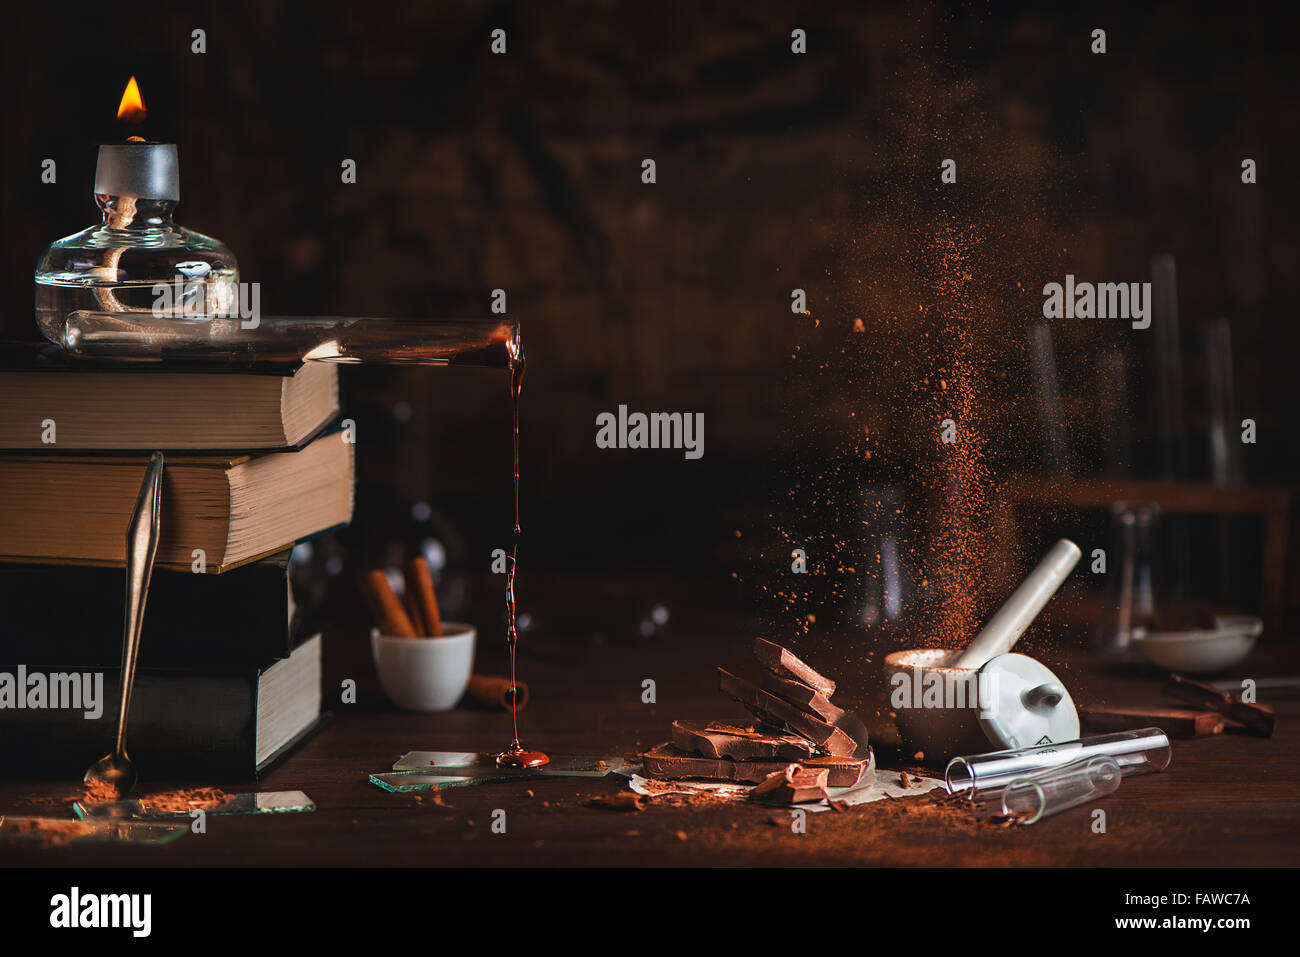 Phases de chocolat Photo Stock